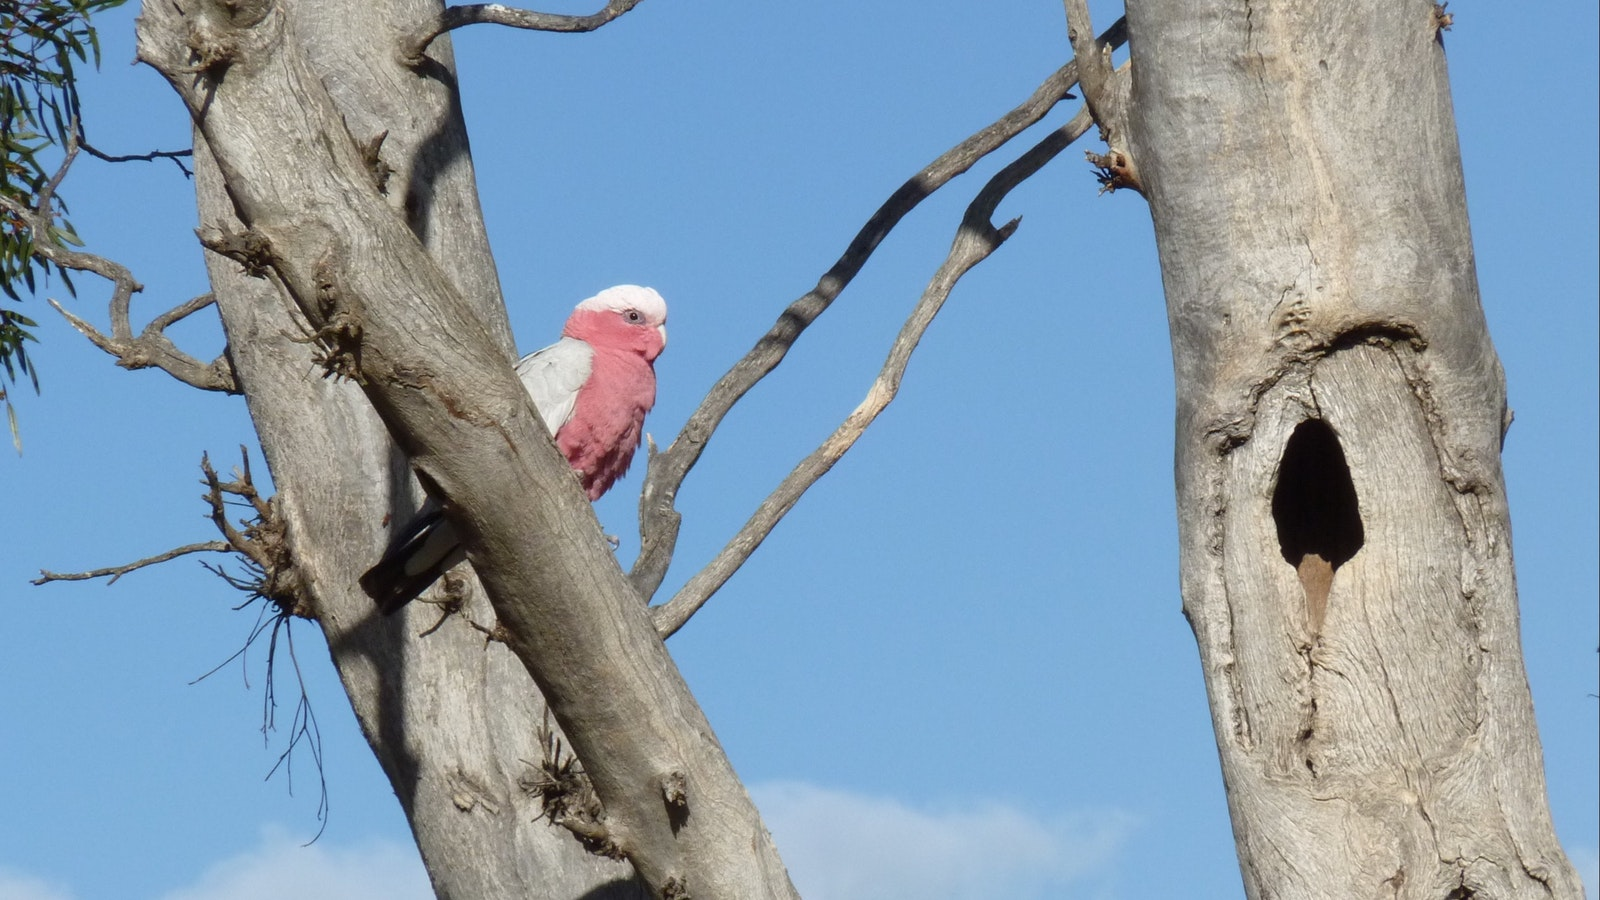 Watching a Galah assess a tree hollow that might make a suitalbe nest site